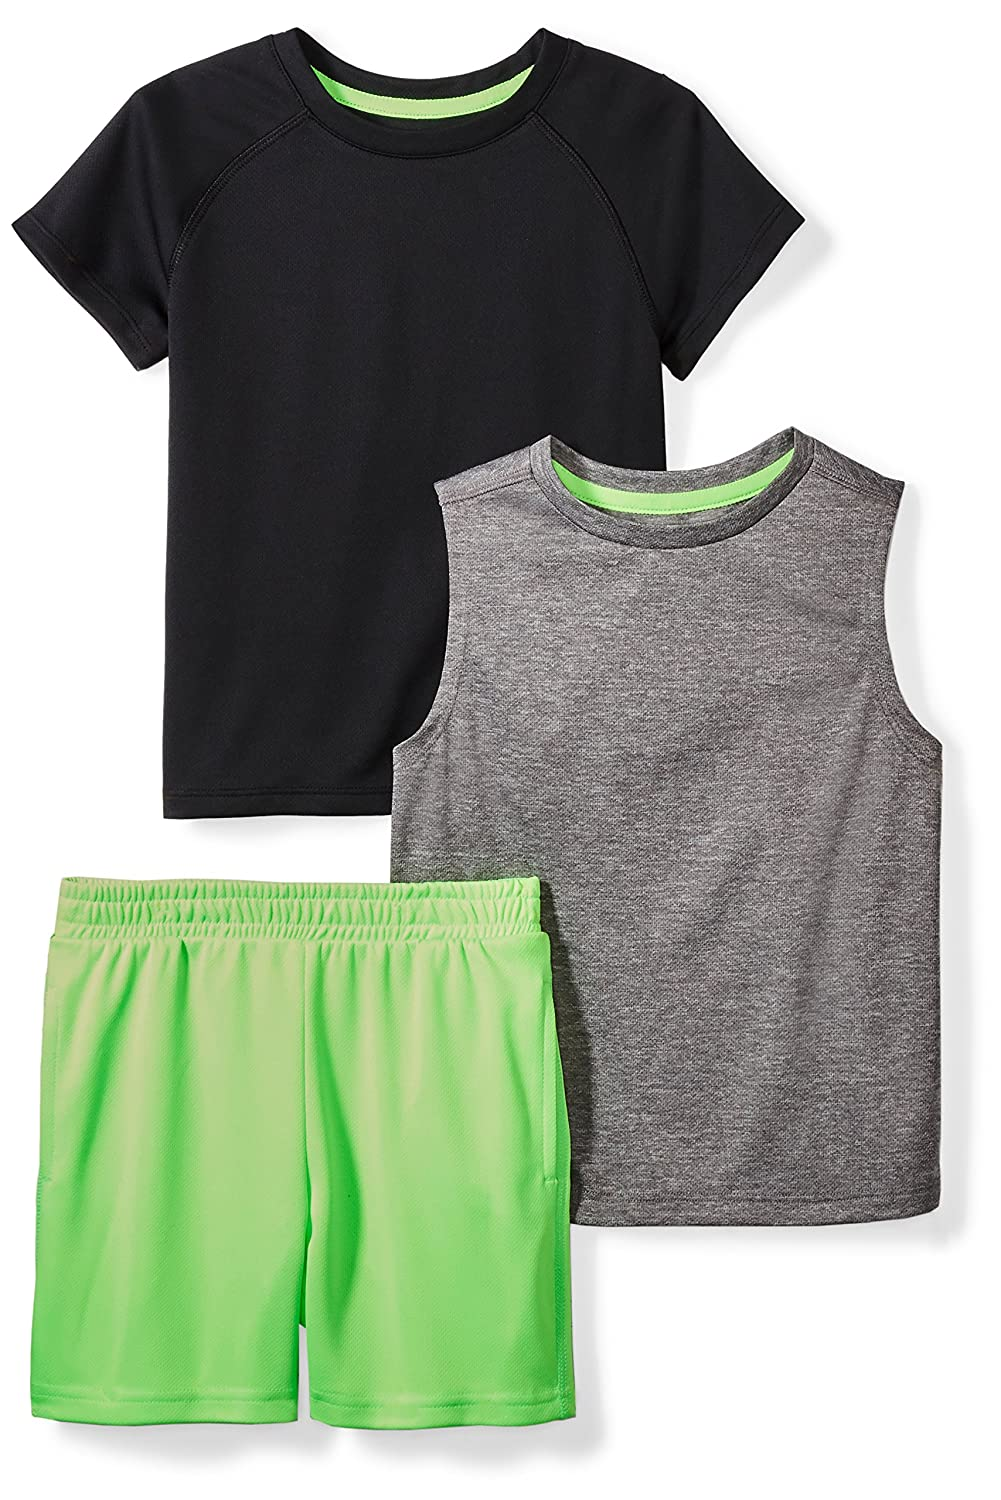 Spotted Zebra Boys Toddler /& Kids Active T-Shirt Tank and Shorts Set Brand